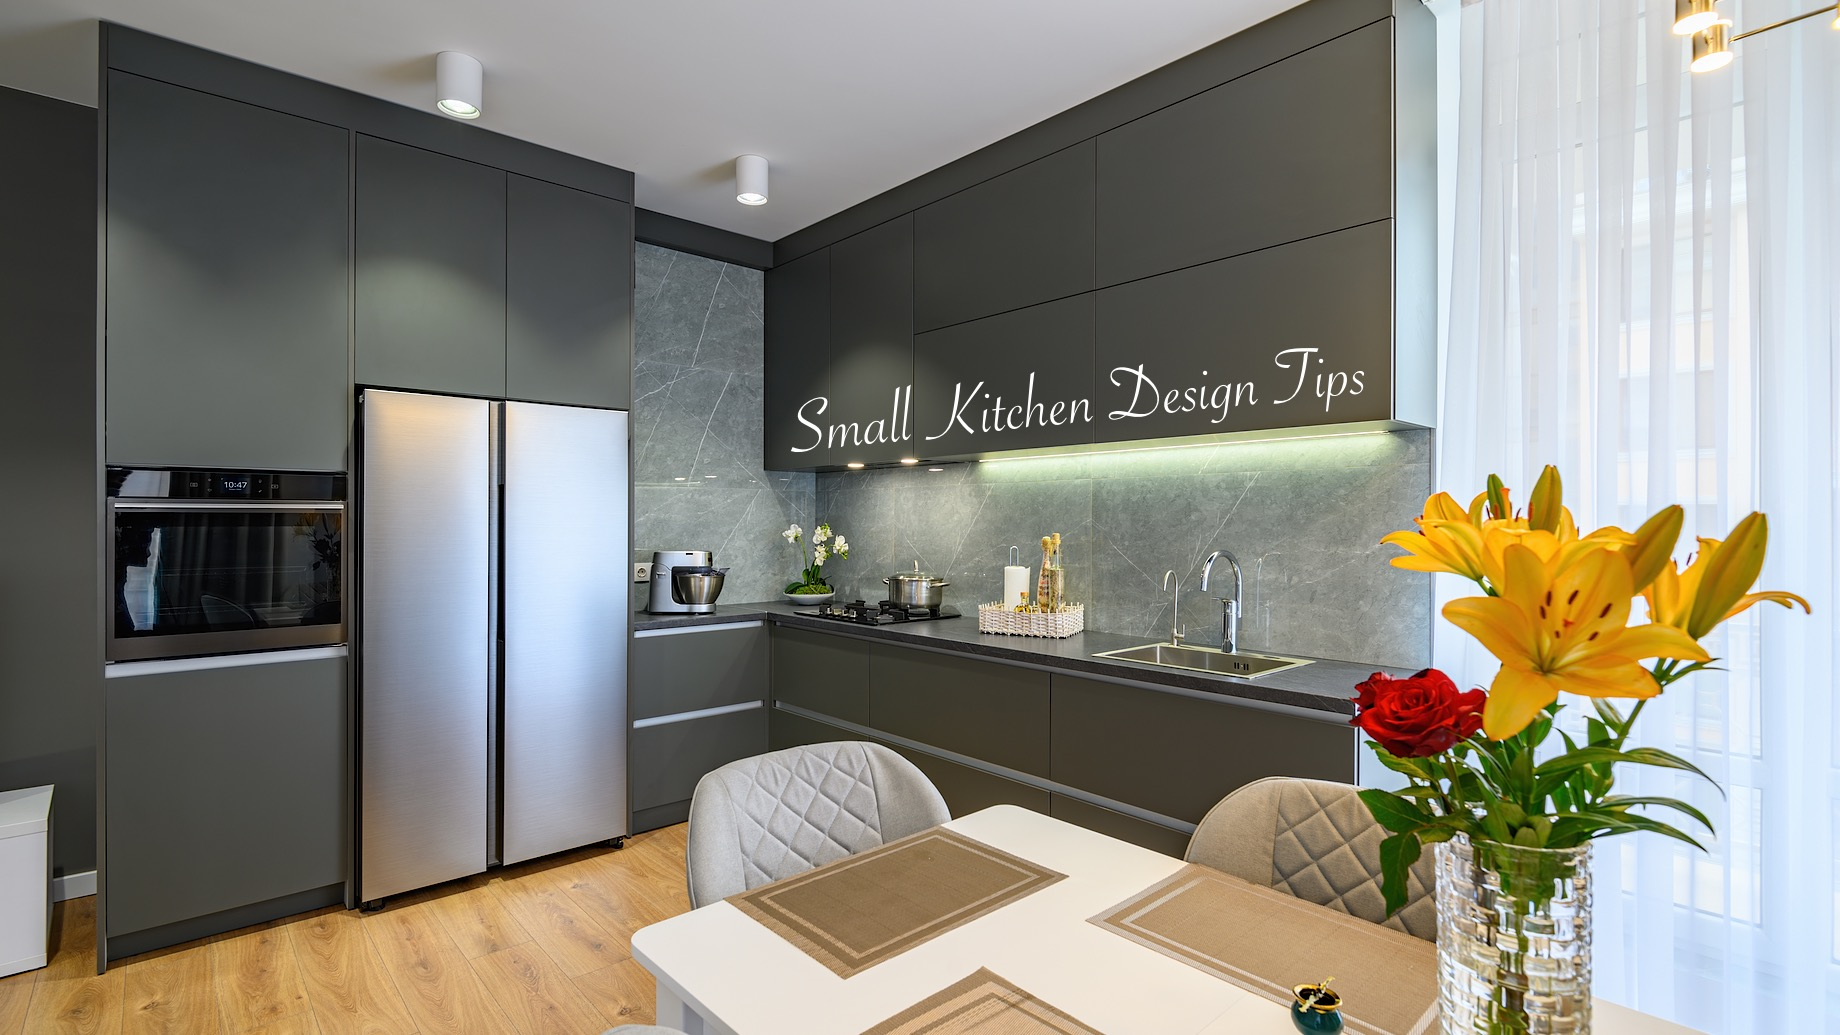 Small Kitchen Design Tips - Ideas to Make the Most of Your Space